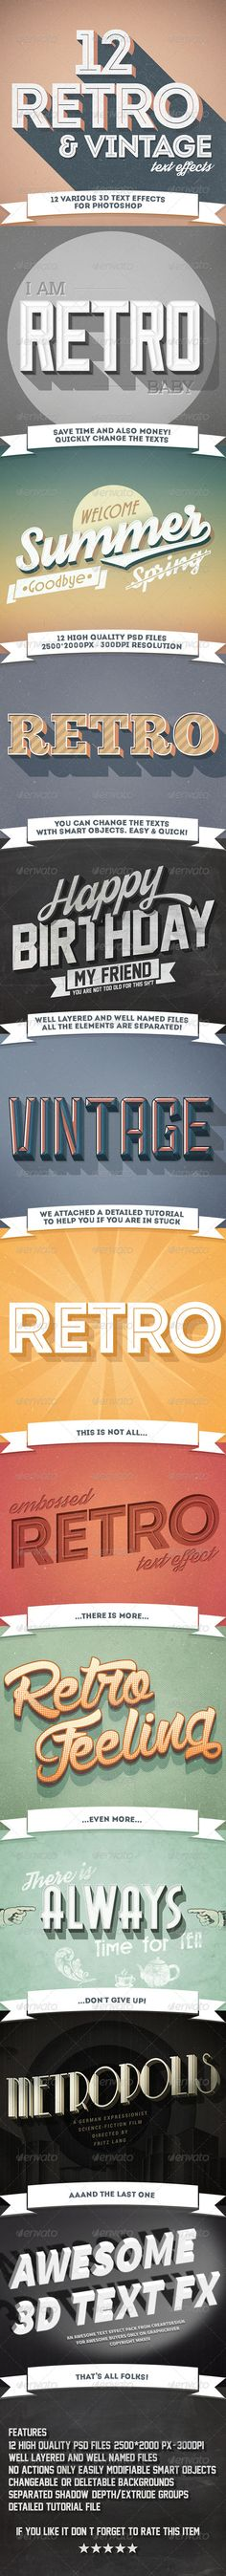 12 Various 3D Retro & Vintage Text Effects Pack